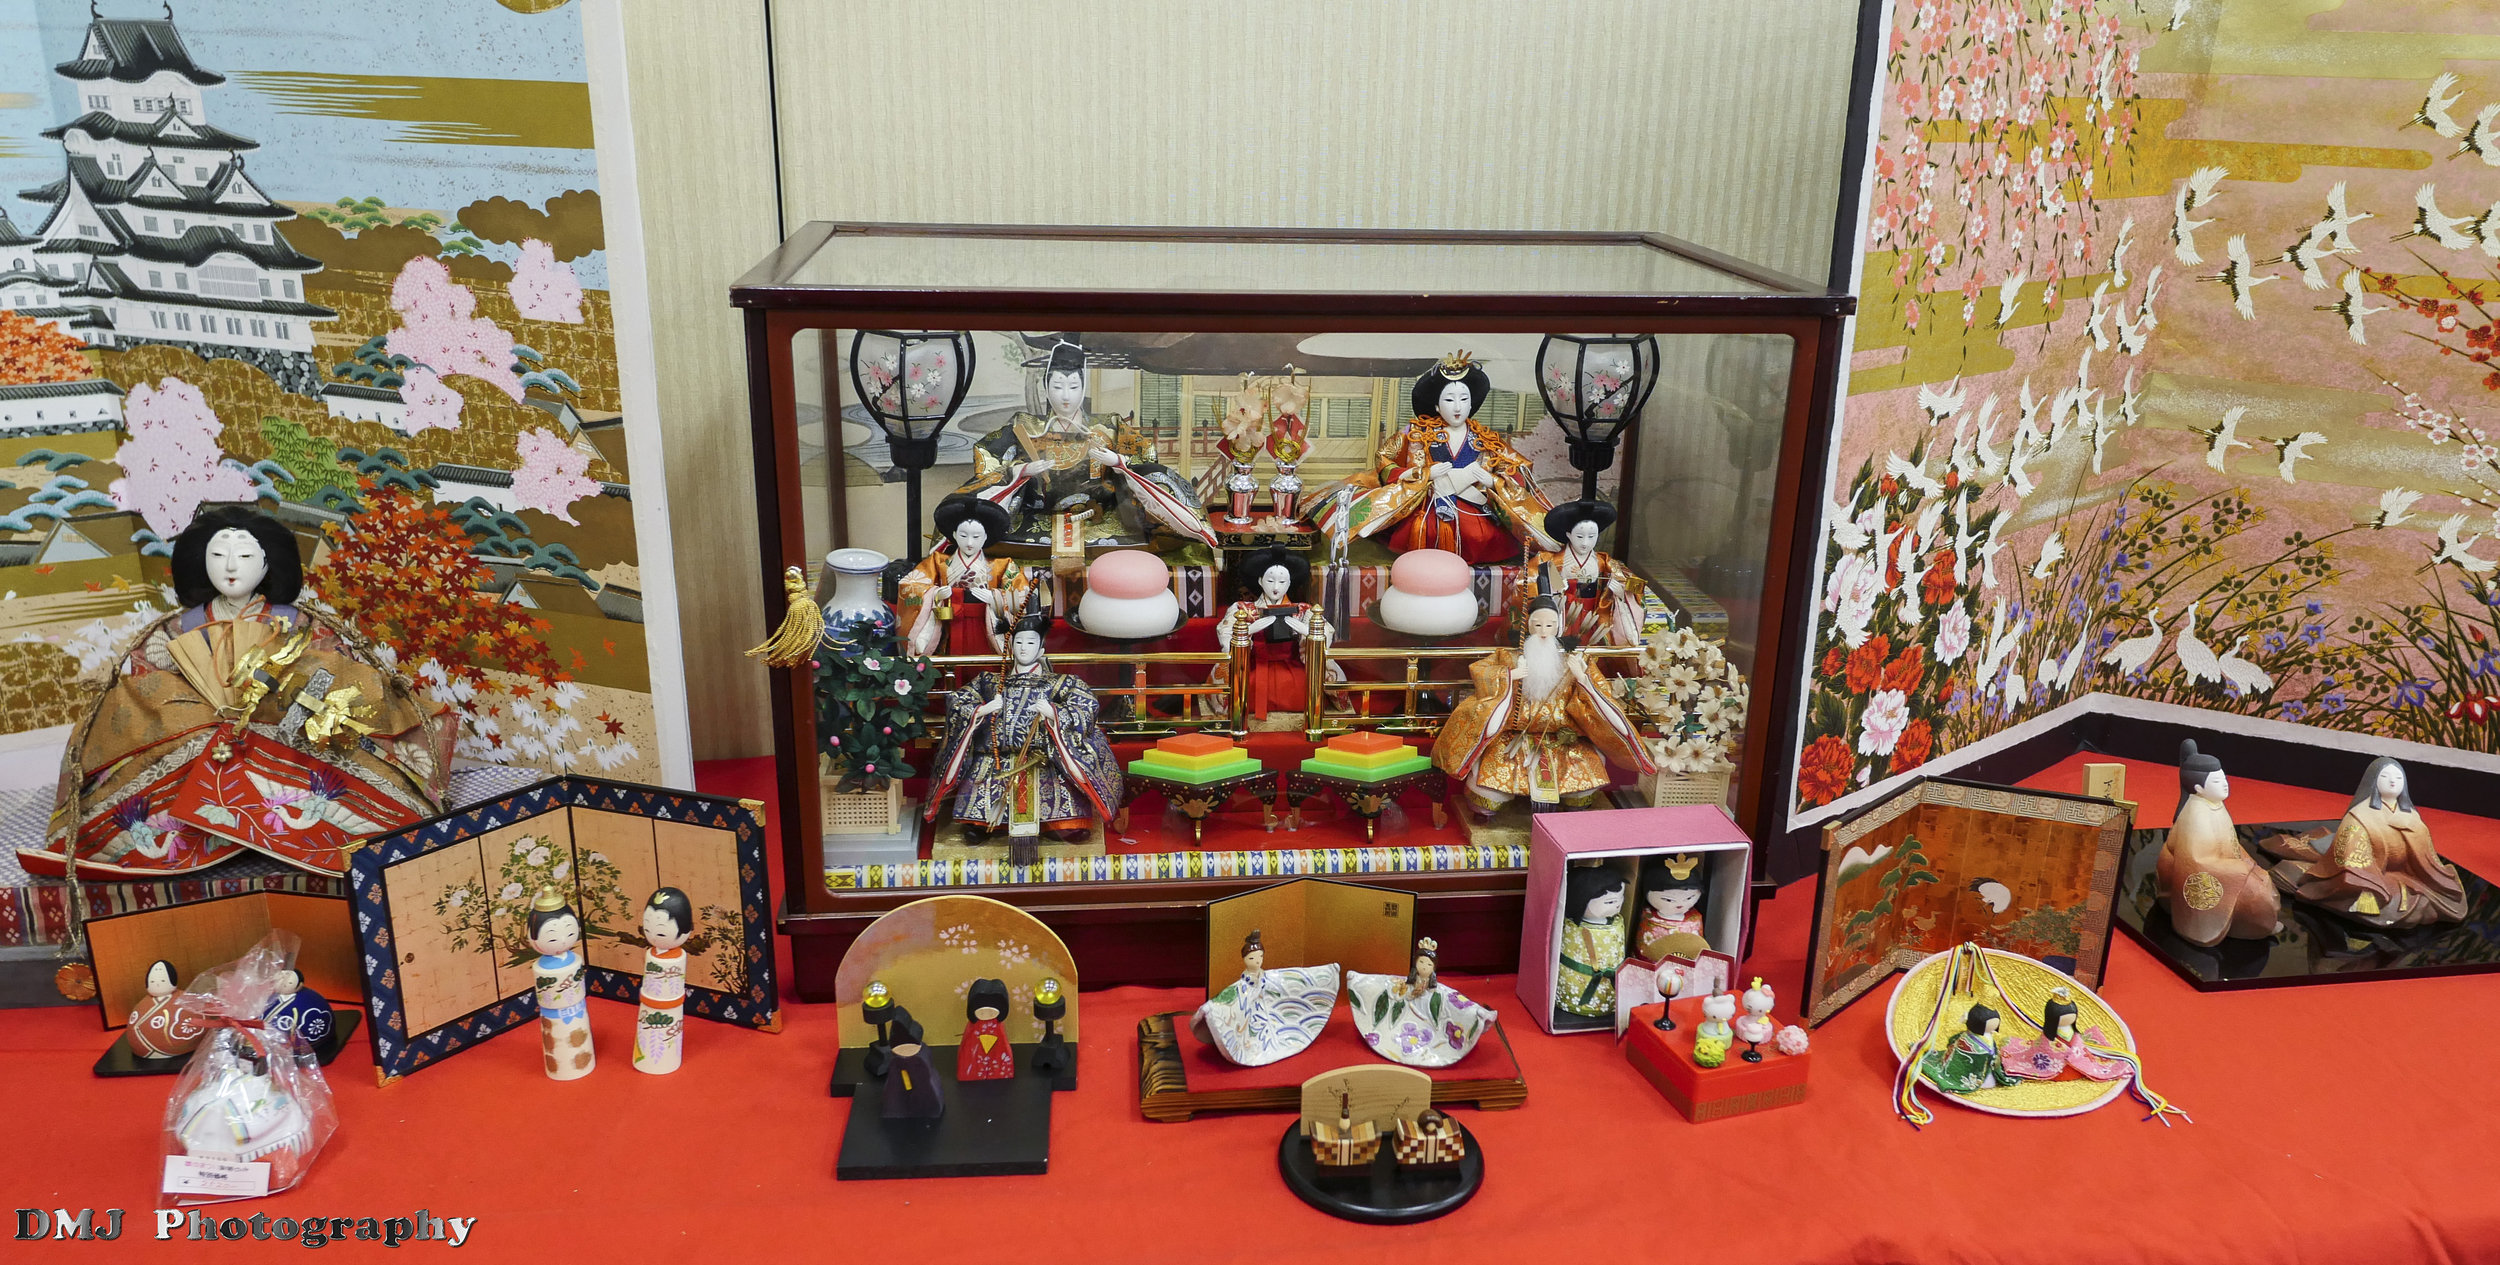 A small portion of the Hina Doll Exhibit at Anime USA 2016